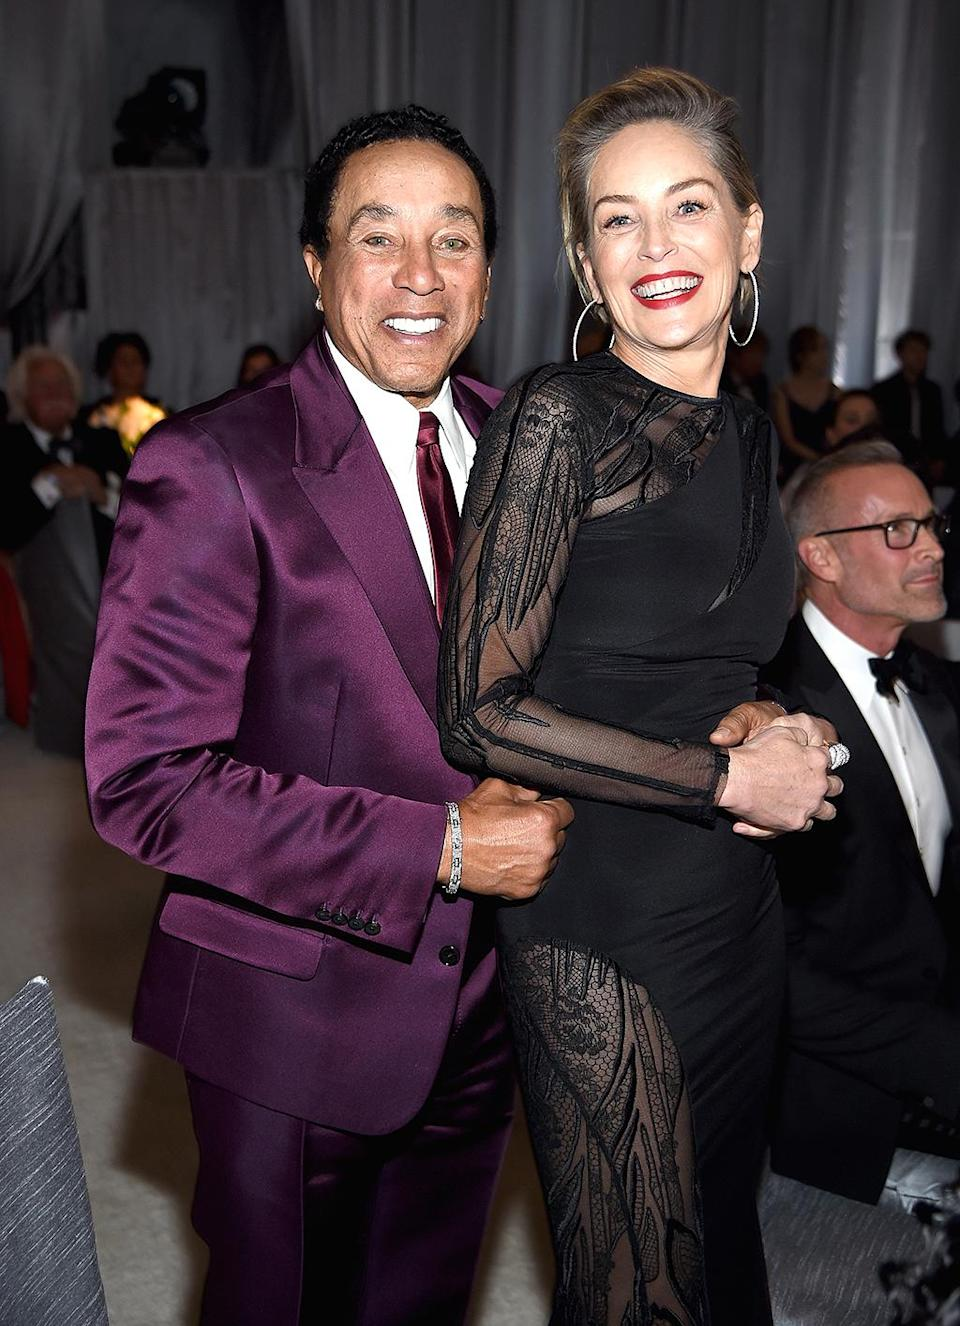 <p>Smokey Robinson and actor Sharon Stone attend the 25th Annual Elton John AIDS Foundation's Academy Awards Viewing Party at The City of West Hollywood Park on February 26, 2017 in West Hollywood, California. (Photo by Dimitrios Kambouris/Getty Images for EJAF) </p>